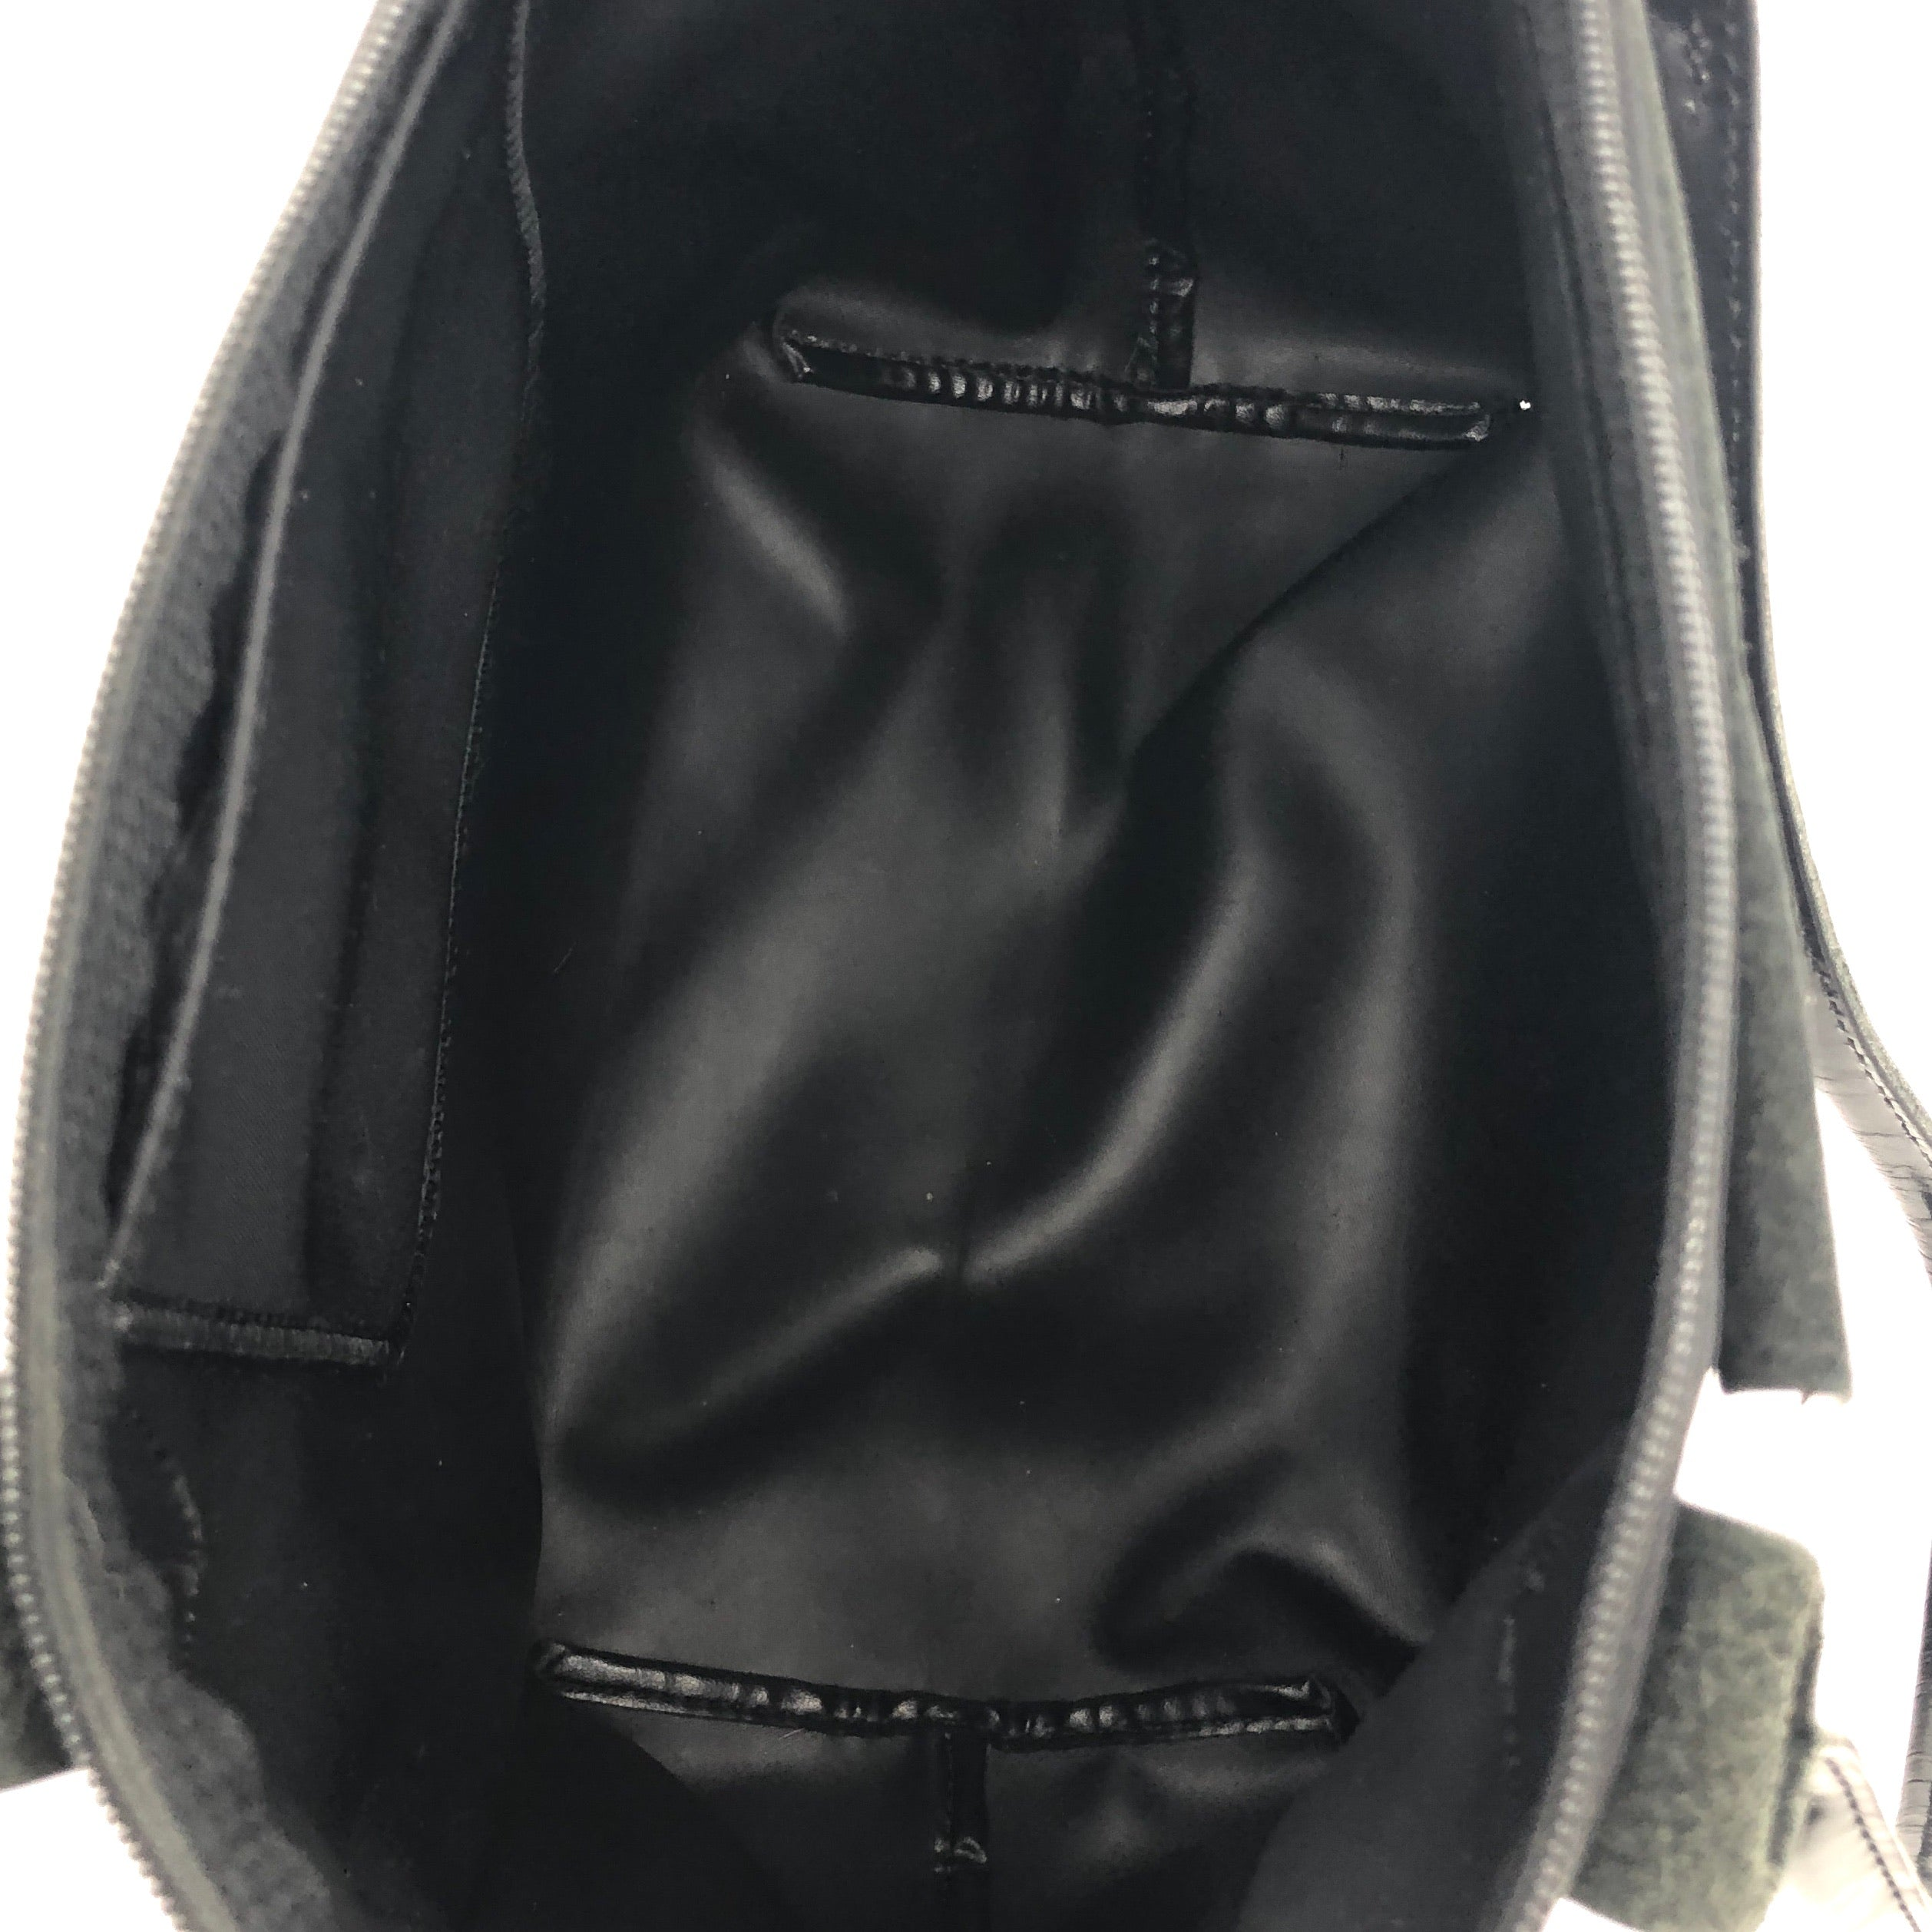 Handbag Designer By Longchamp  Size: Small - BRAND: LONGCHAMP <BR>STYLE: MODELE DEPOSE<BR>COLOR: BLACK <BR>SIZE: SMALL <BR>SKU: 262-26275-74621<BR>WEAR SHOWS • BROKEN ZIPPER • AS IS